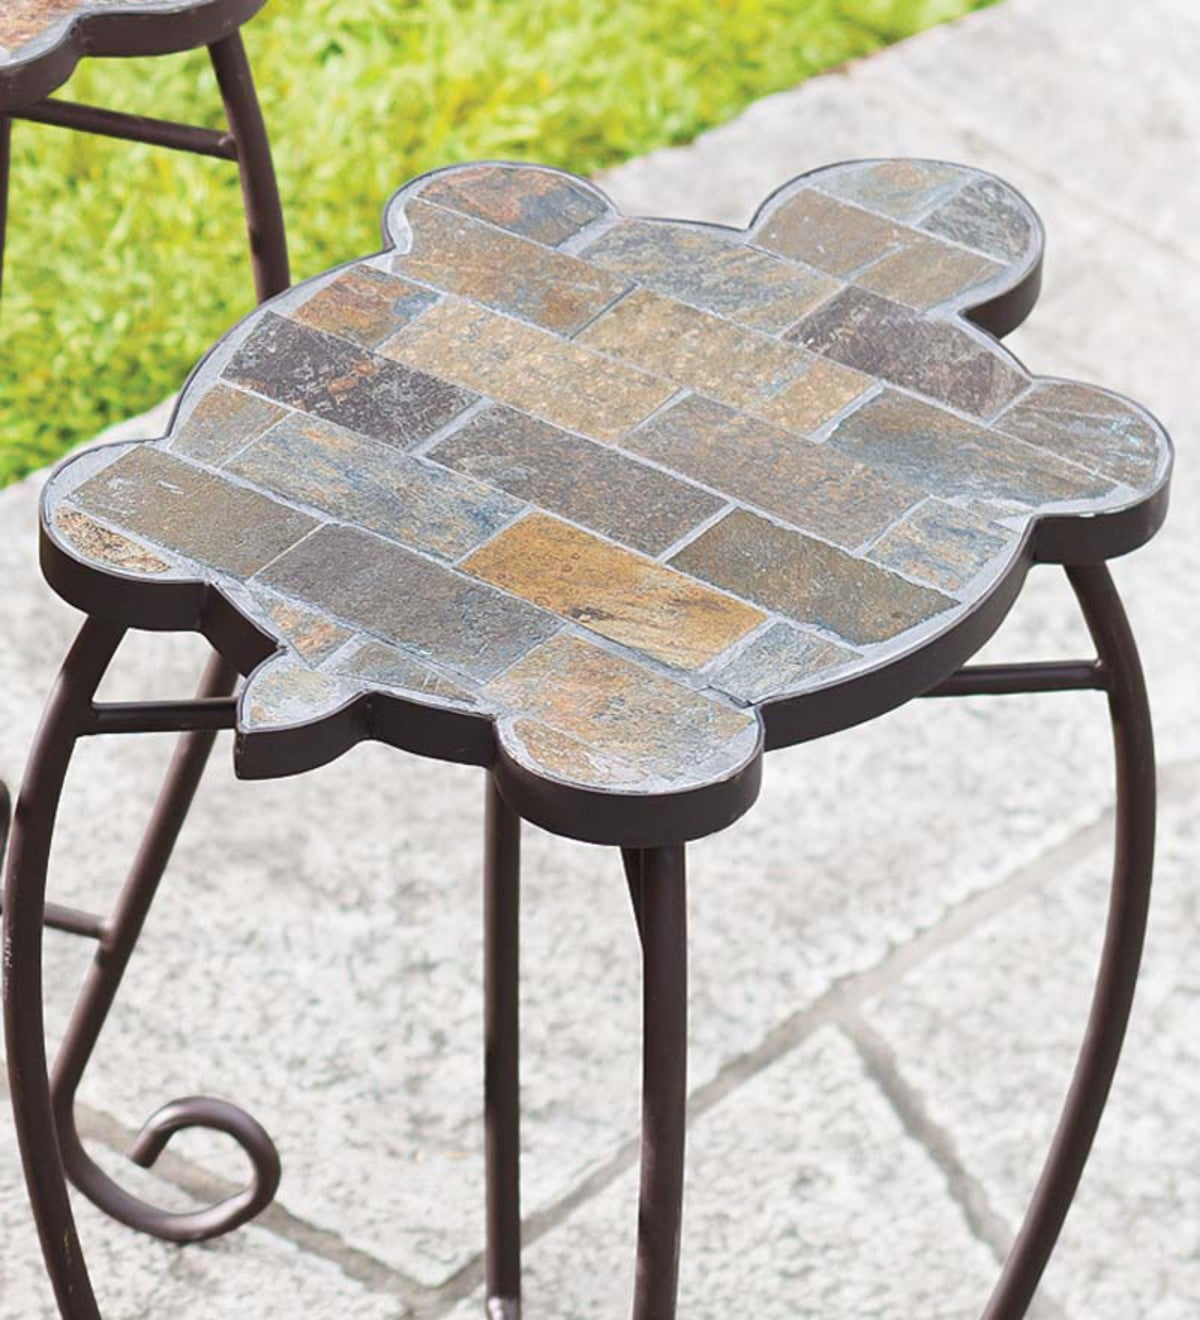 Slate Butterfly, Ladybug And Turtle Outdoor Accent Tables With Iron Base